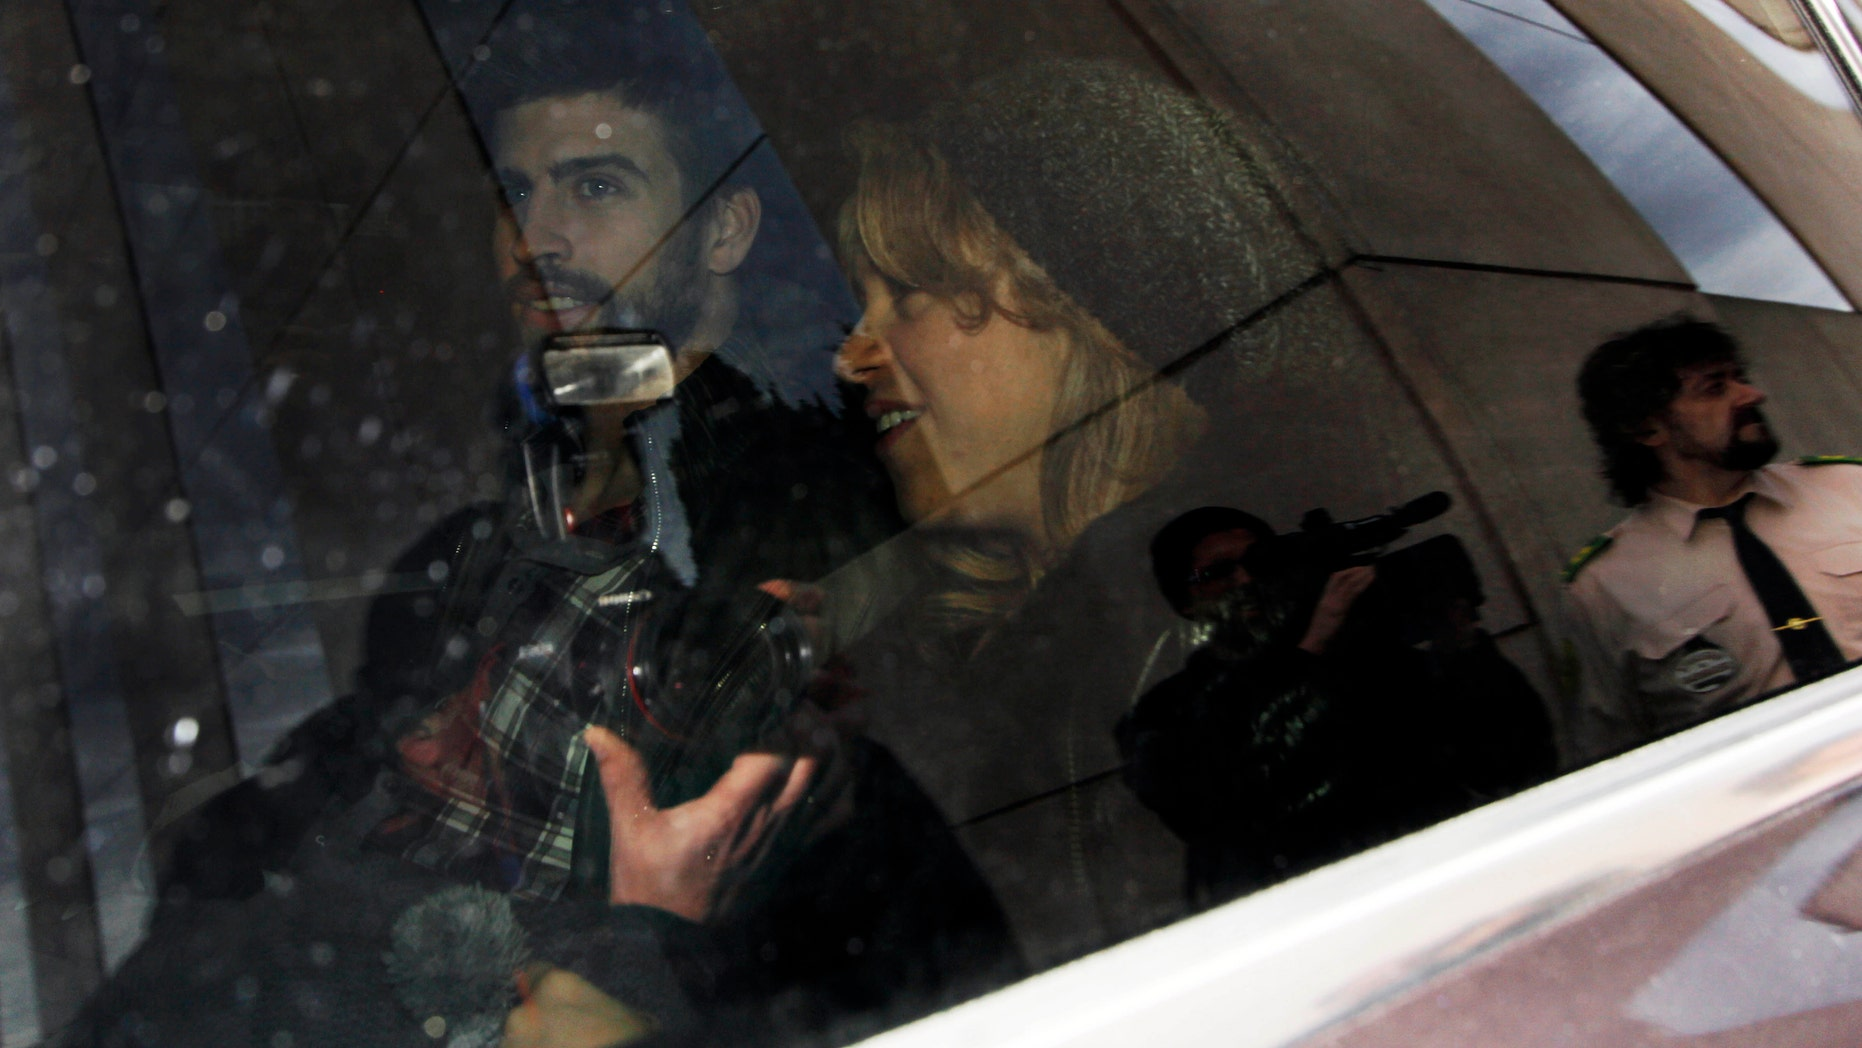 Jan. 27, 2013: FC Barcelona's Gerard Piqué, left, and Shakira, right, and their son, unseen, leave a hospital surrounded by media,  in Barcelona, Spain.